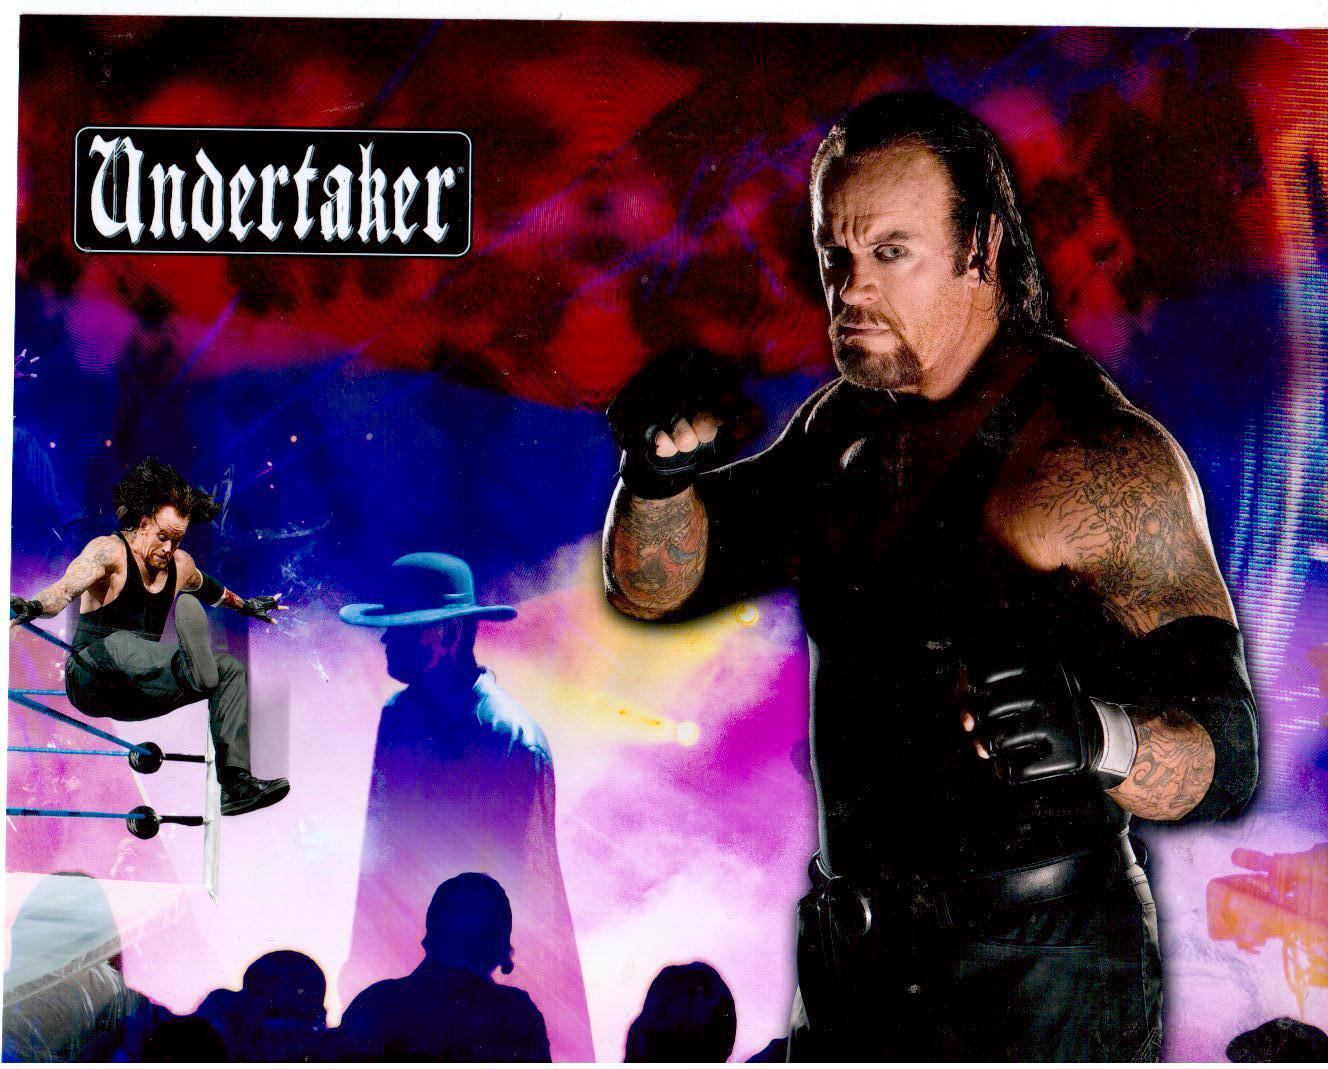 Primary image for Undertaker PF Vintage 8X10 Color Wrestling Memorabilia Photo